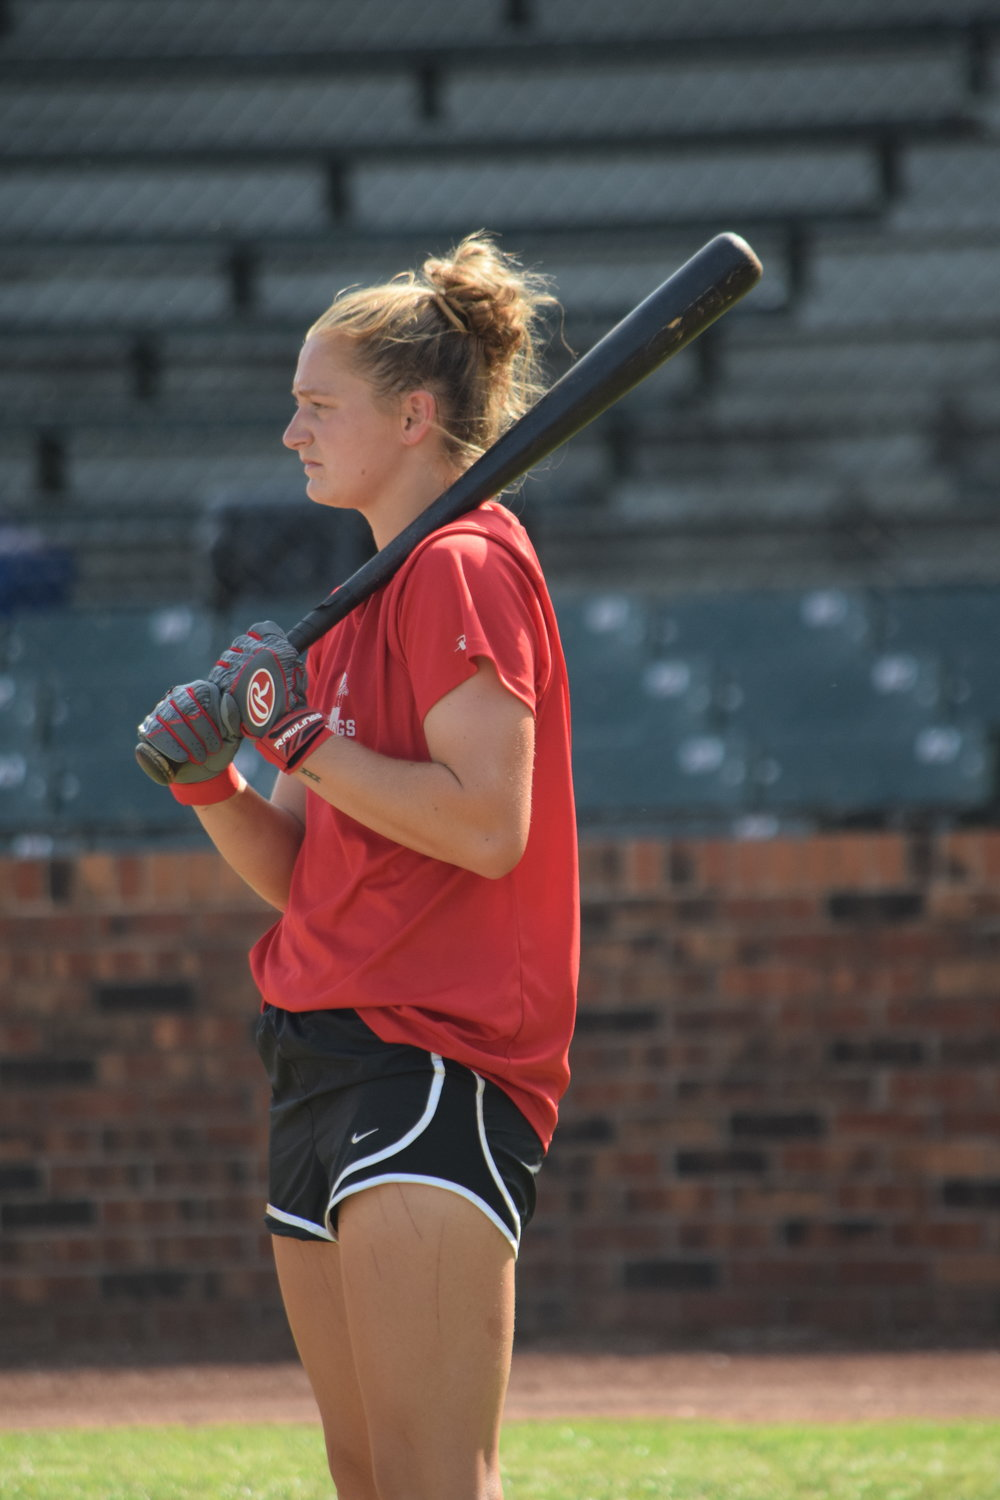 Regan Nash waits her turn for batting practice on Tuesday, prior to her playing in the game. She became the first female in the team history, as well as the M.I.N.K League to appear in a game. The Missouri softball player had an at-bat and played in the outfield during the contest.